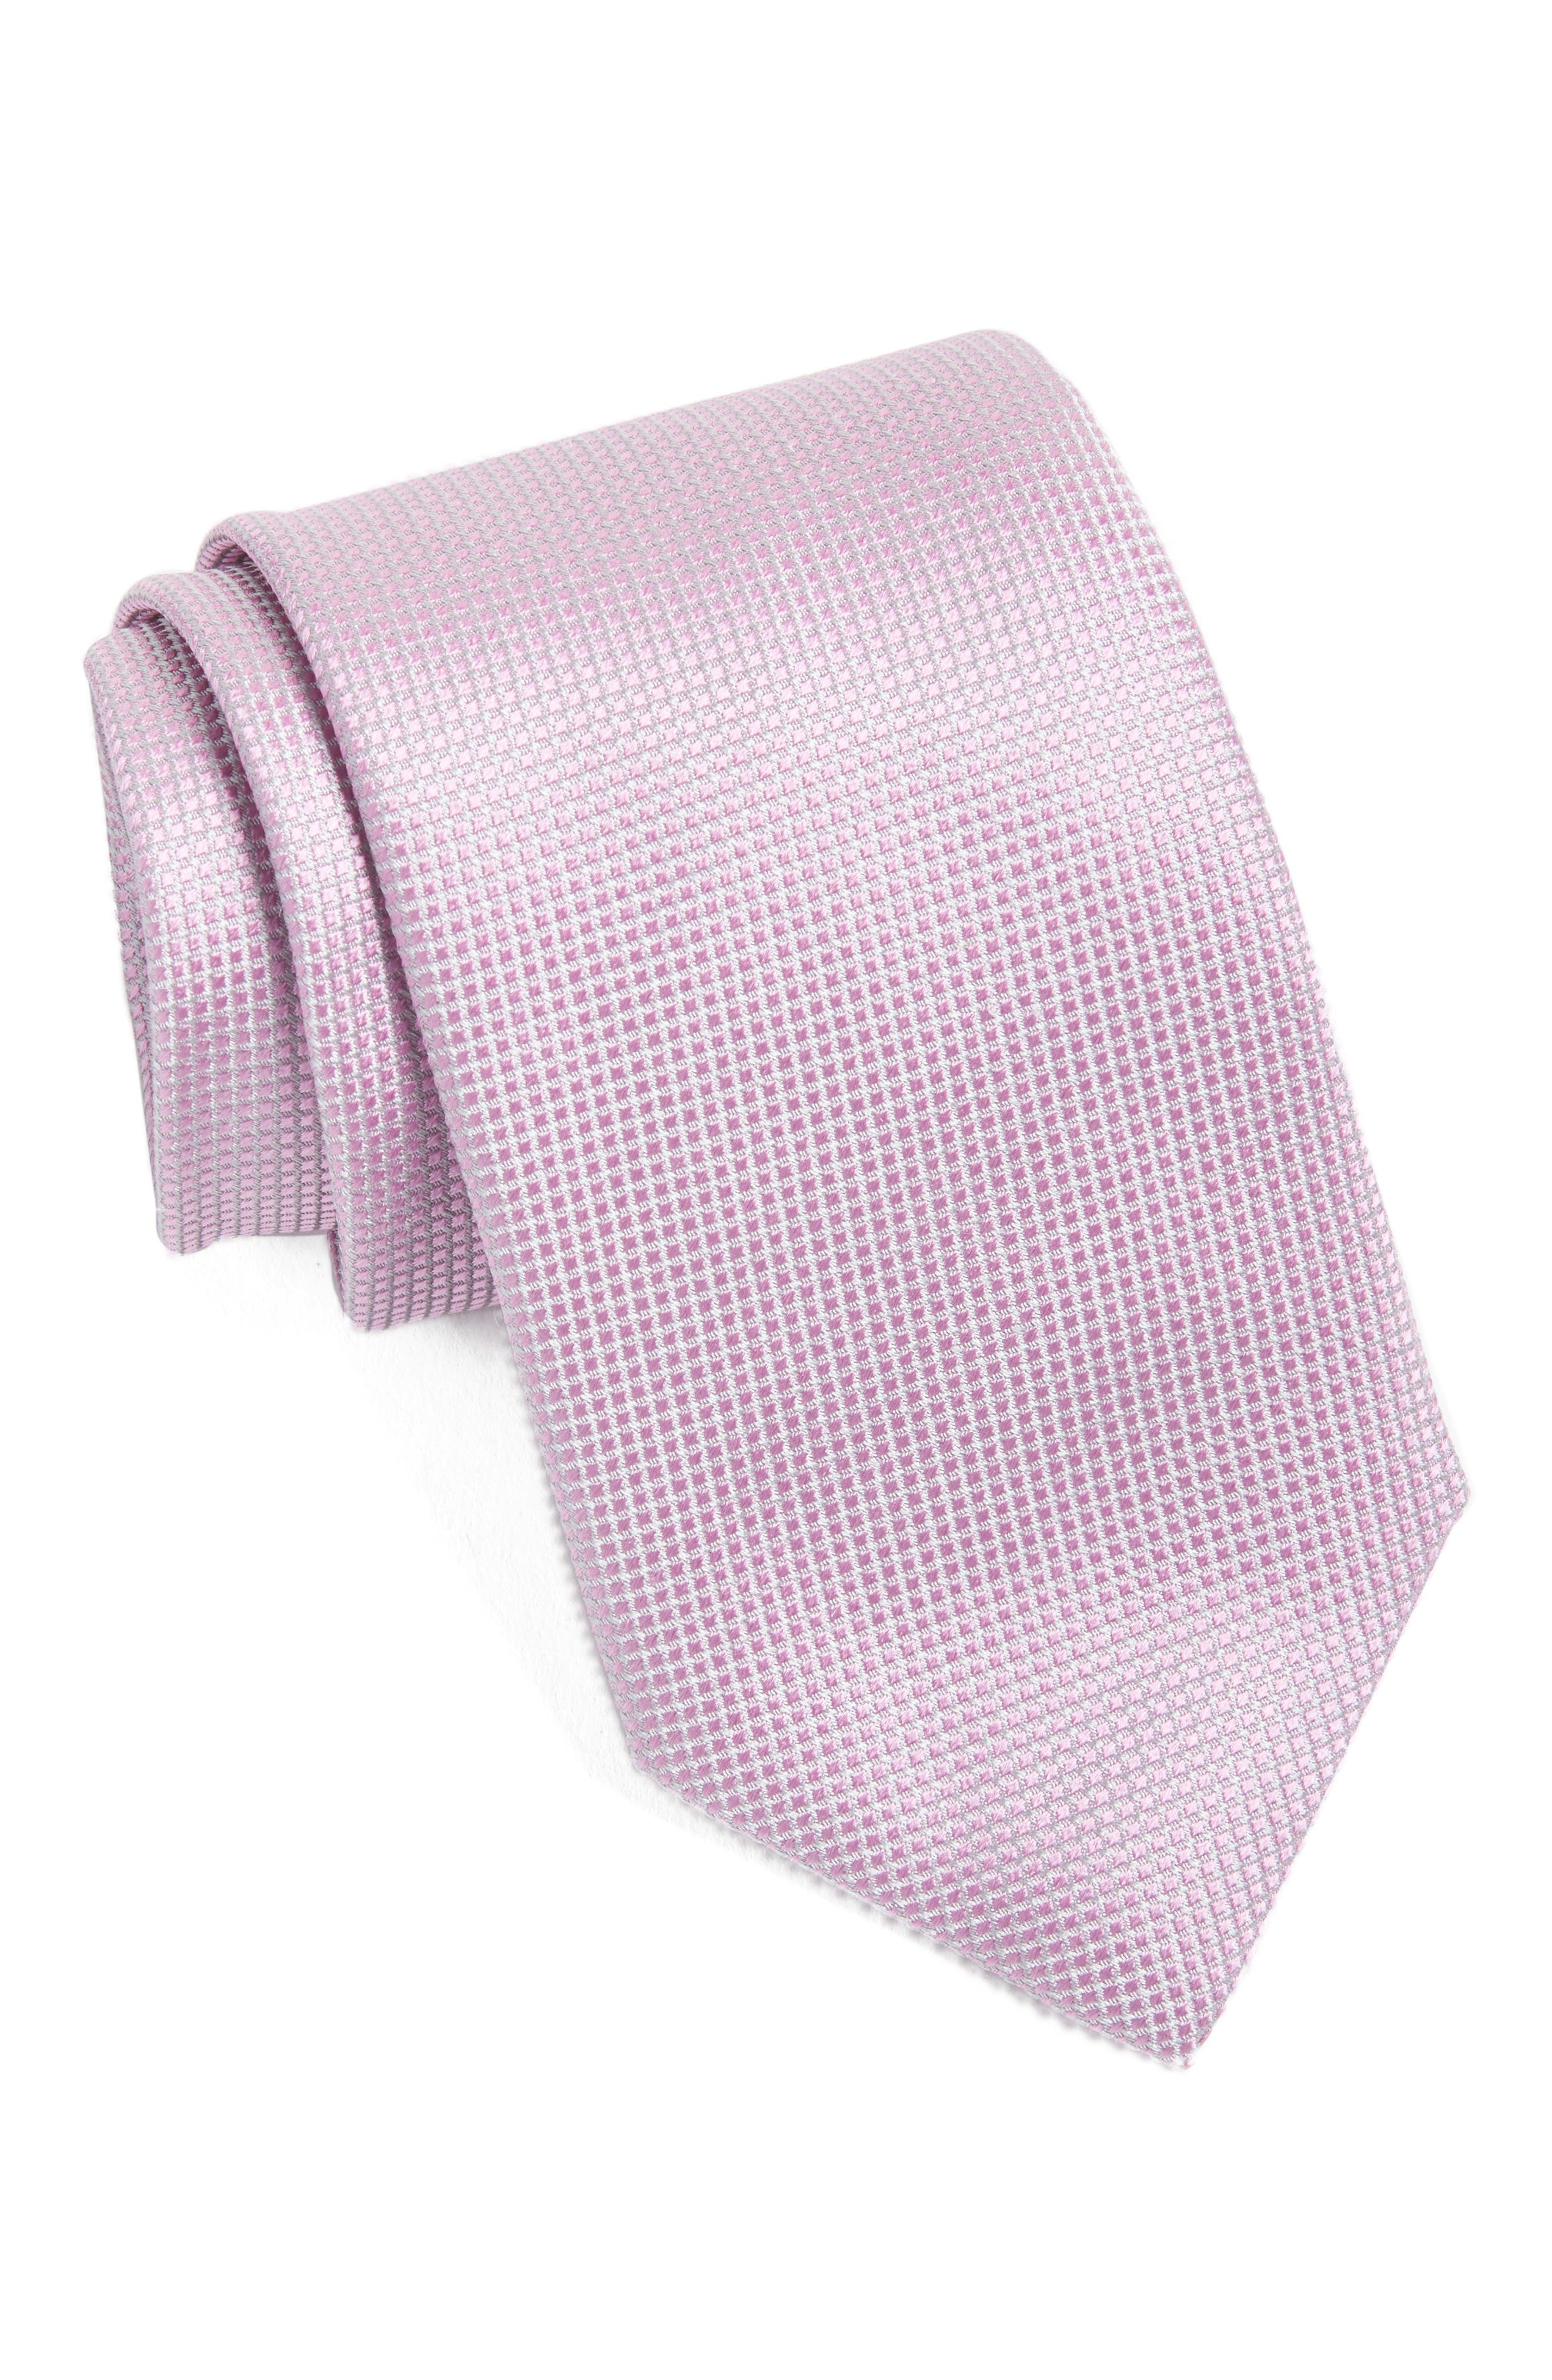 Main Image - Canali Solid Silk Tie